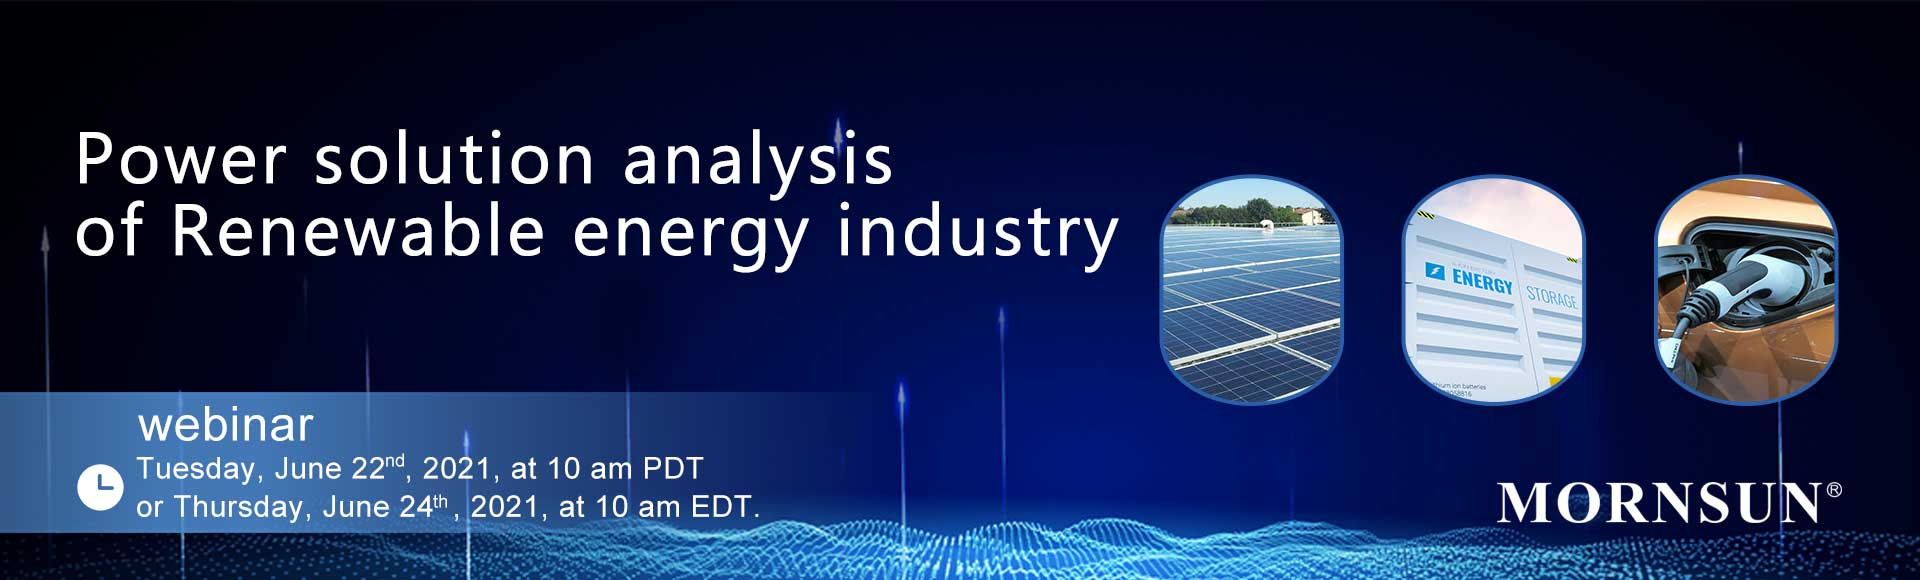 Power solution analysis of Renewable energy industry